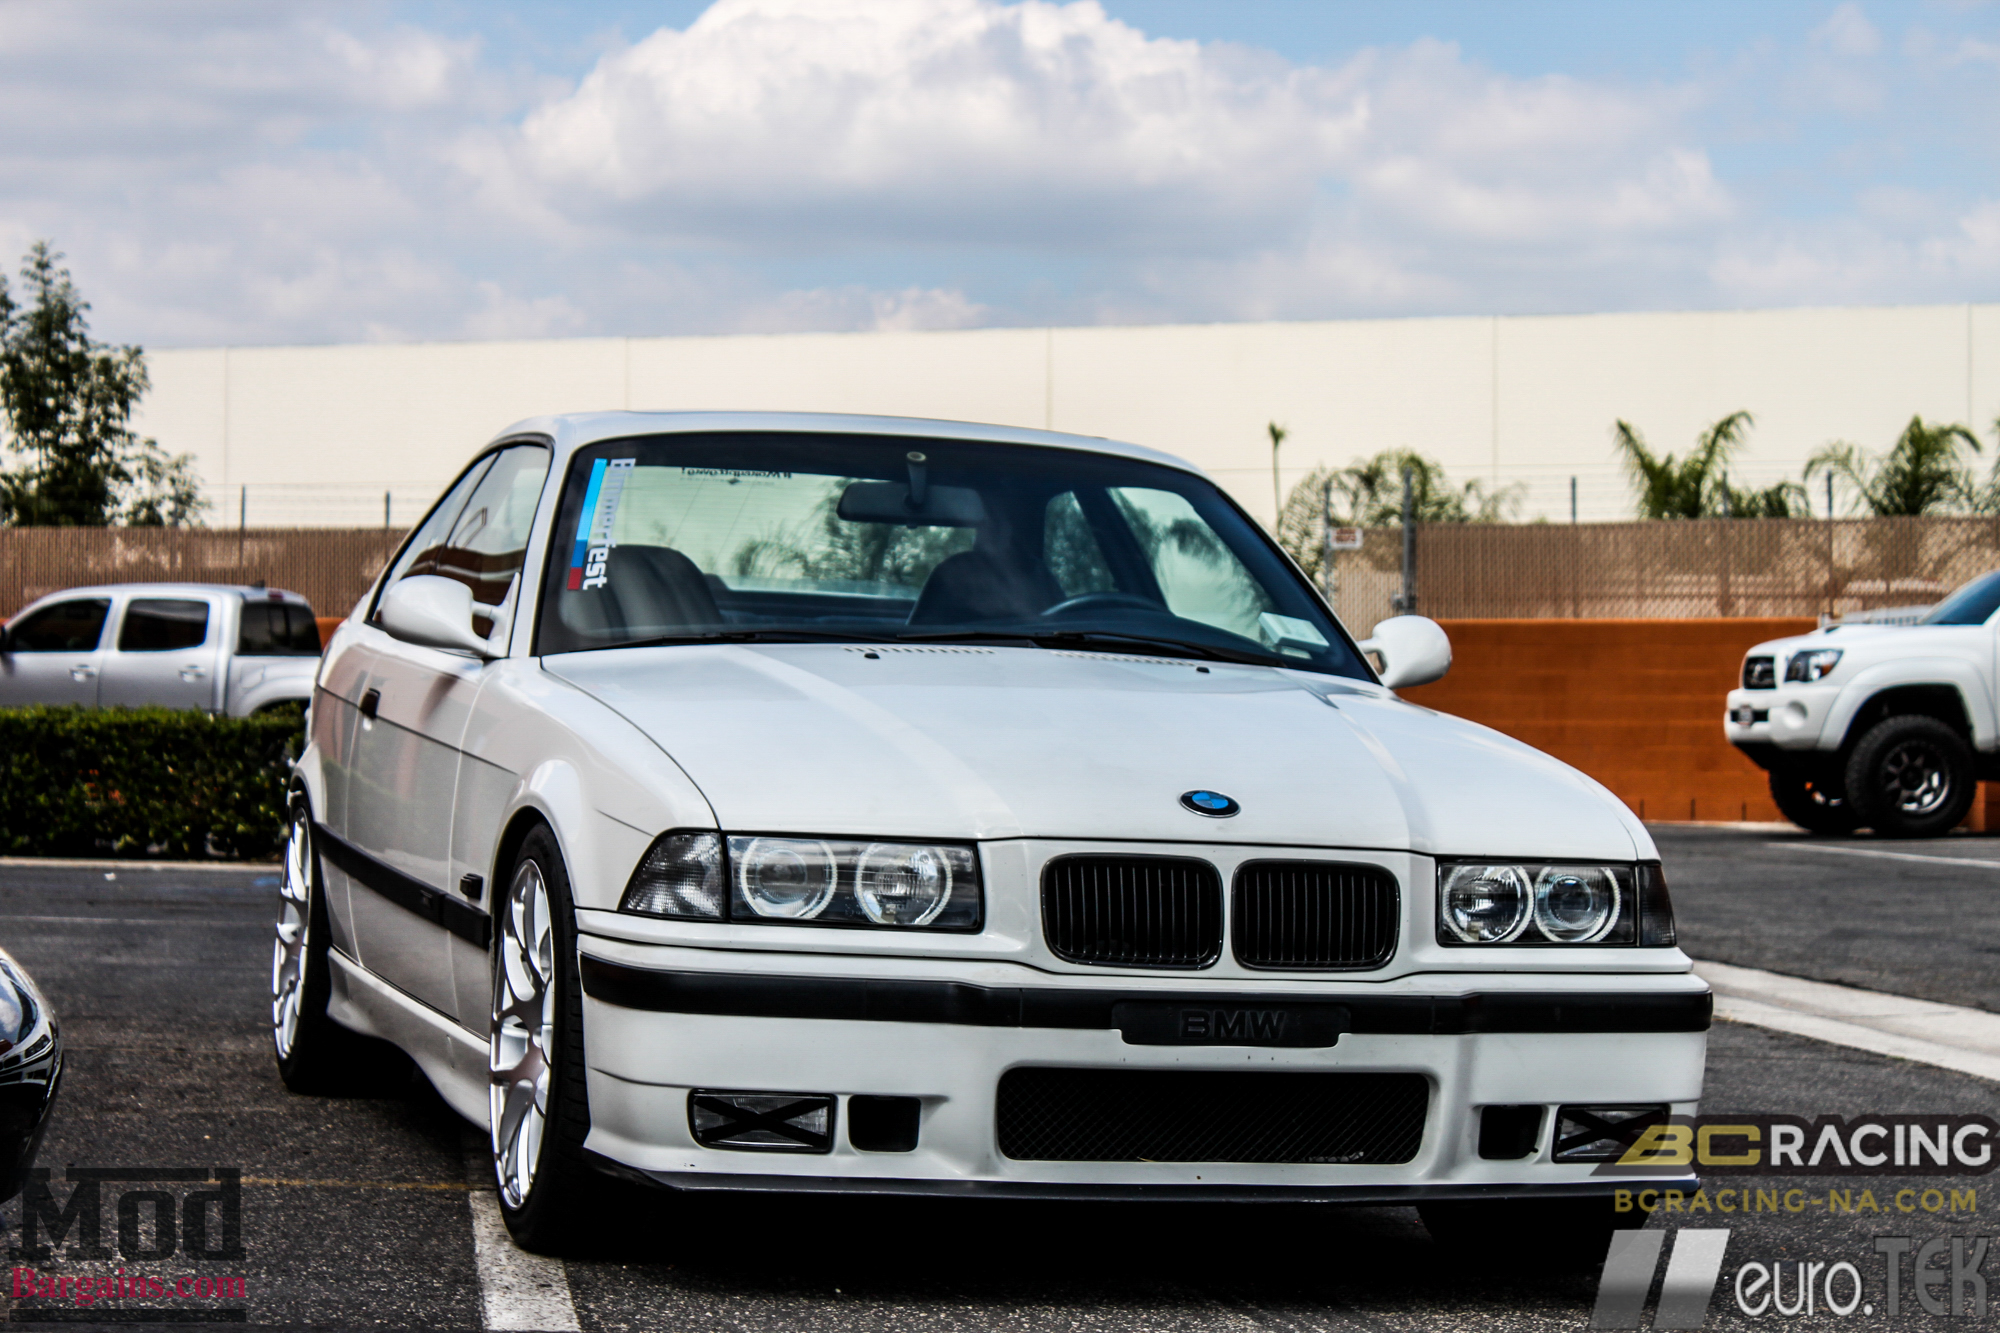 e36 bmw m3 on bc coilovers eurotek wheels. Black Bedroom Furniture Sets. Home Design Ideas